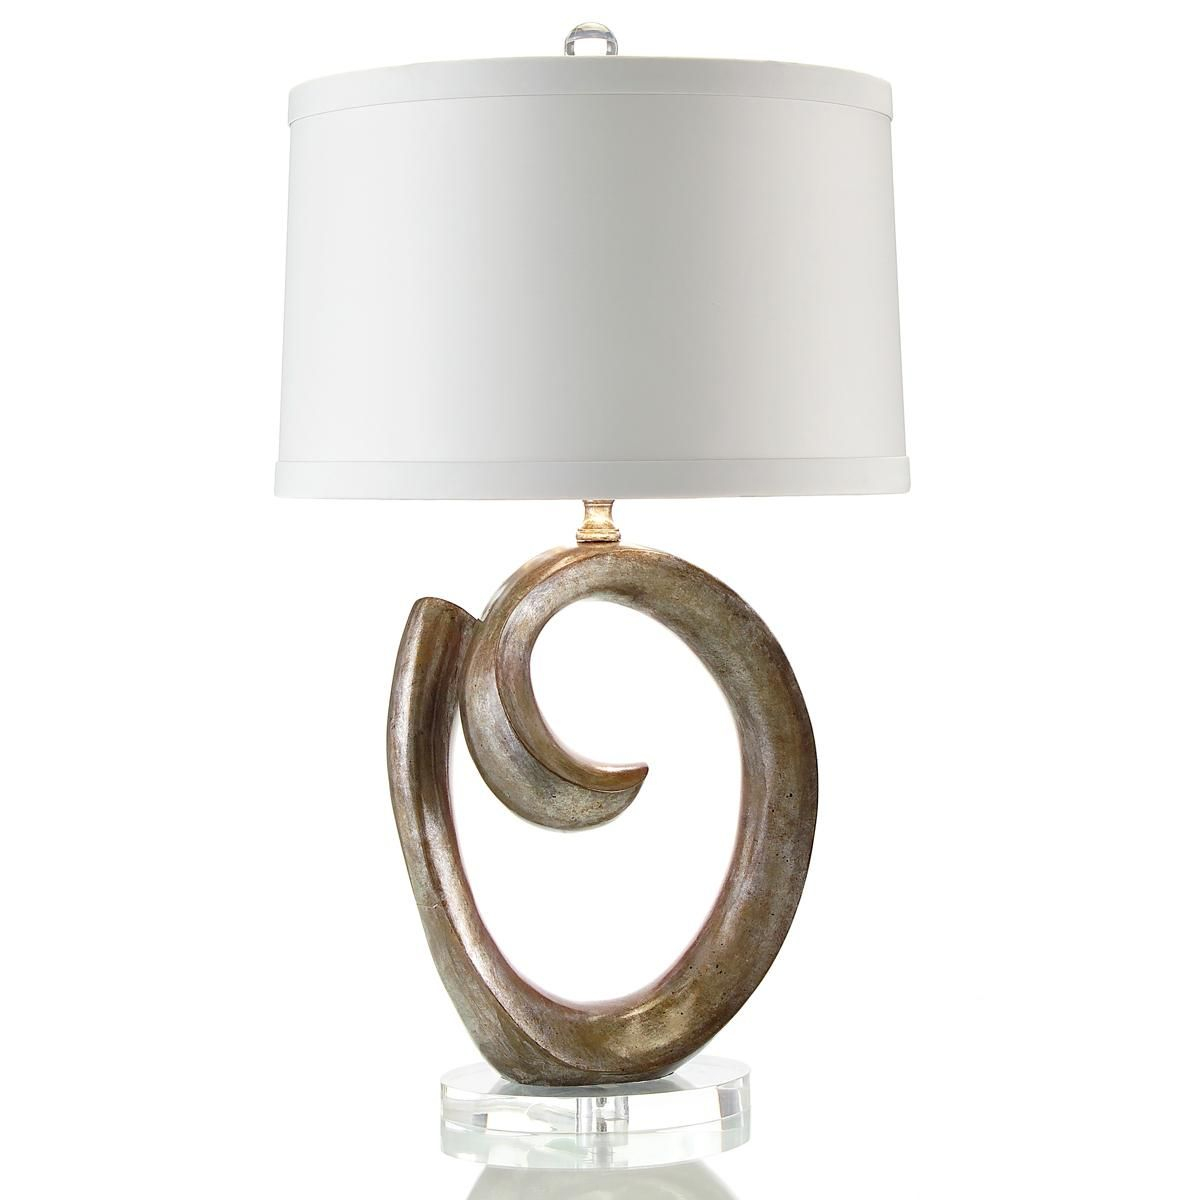 Swirl Sculpture Table Lamp Table Lamp Contemporary Light inside proportions 1200 X 1200